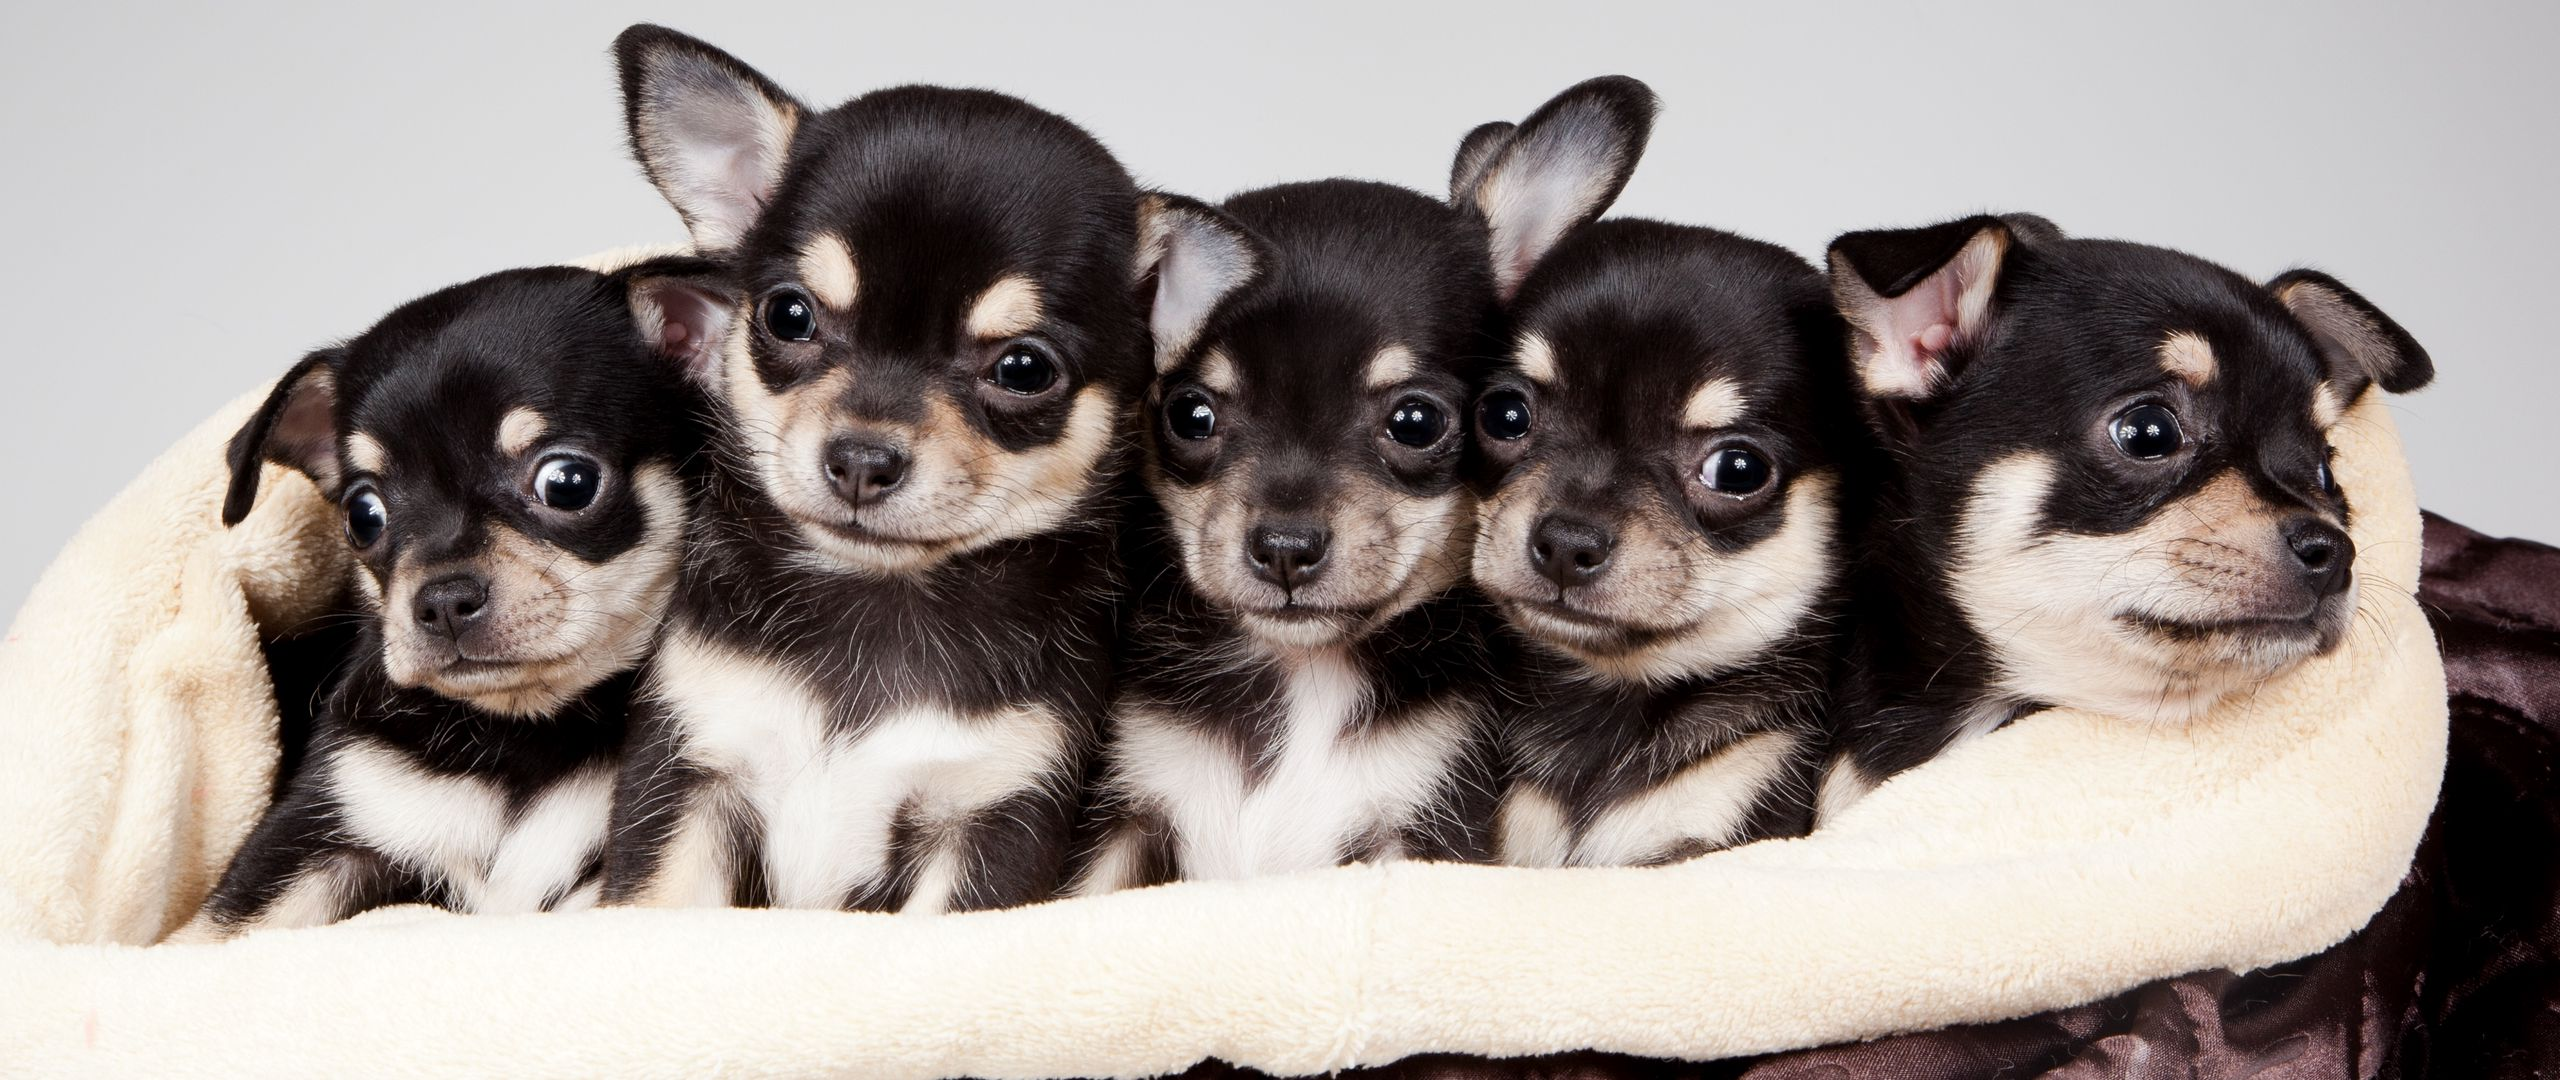 Download wallpaper 2560x1080 national puppy day 2015 celebrity 2560x1080